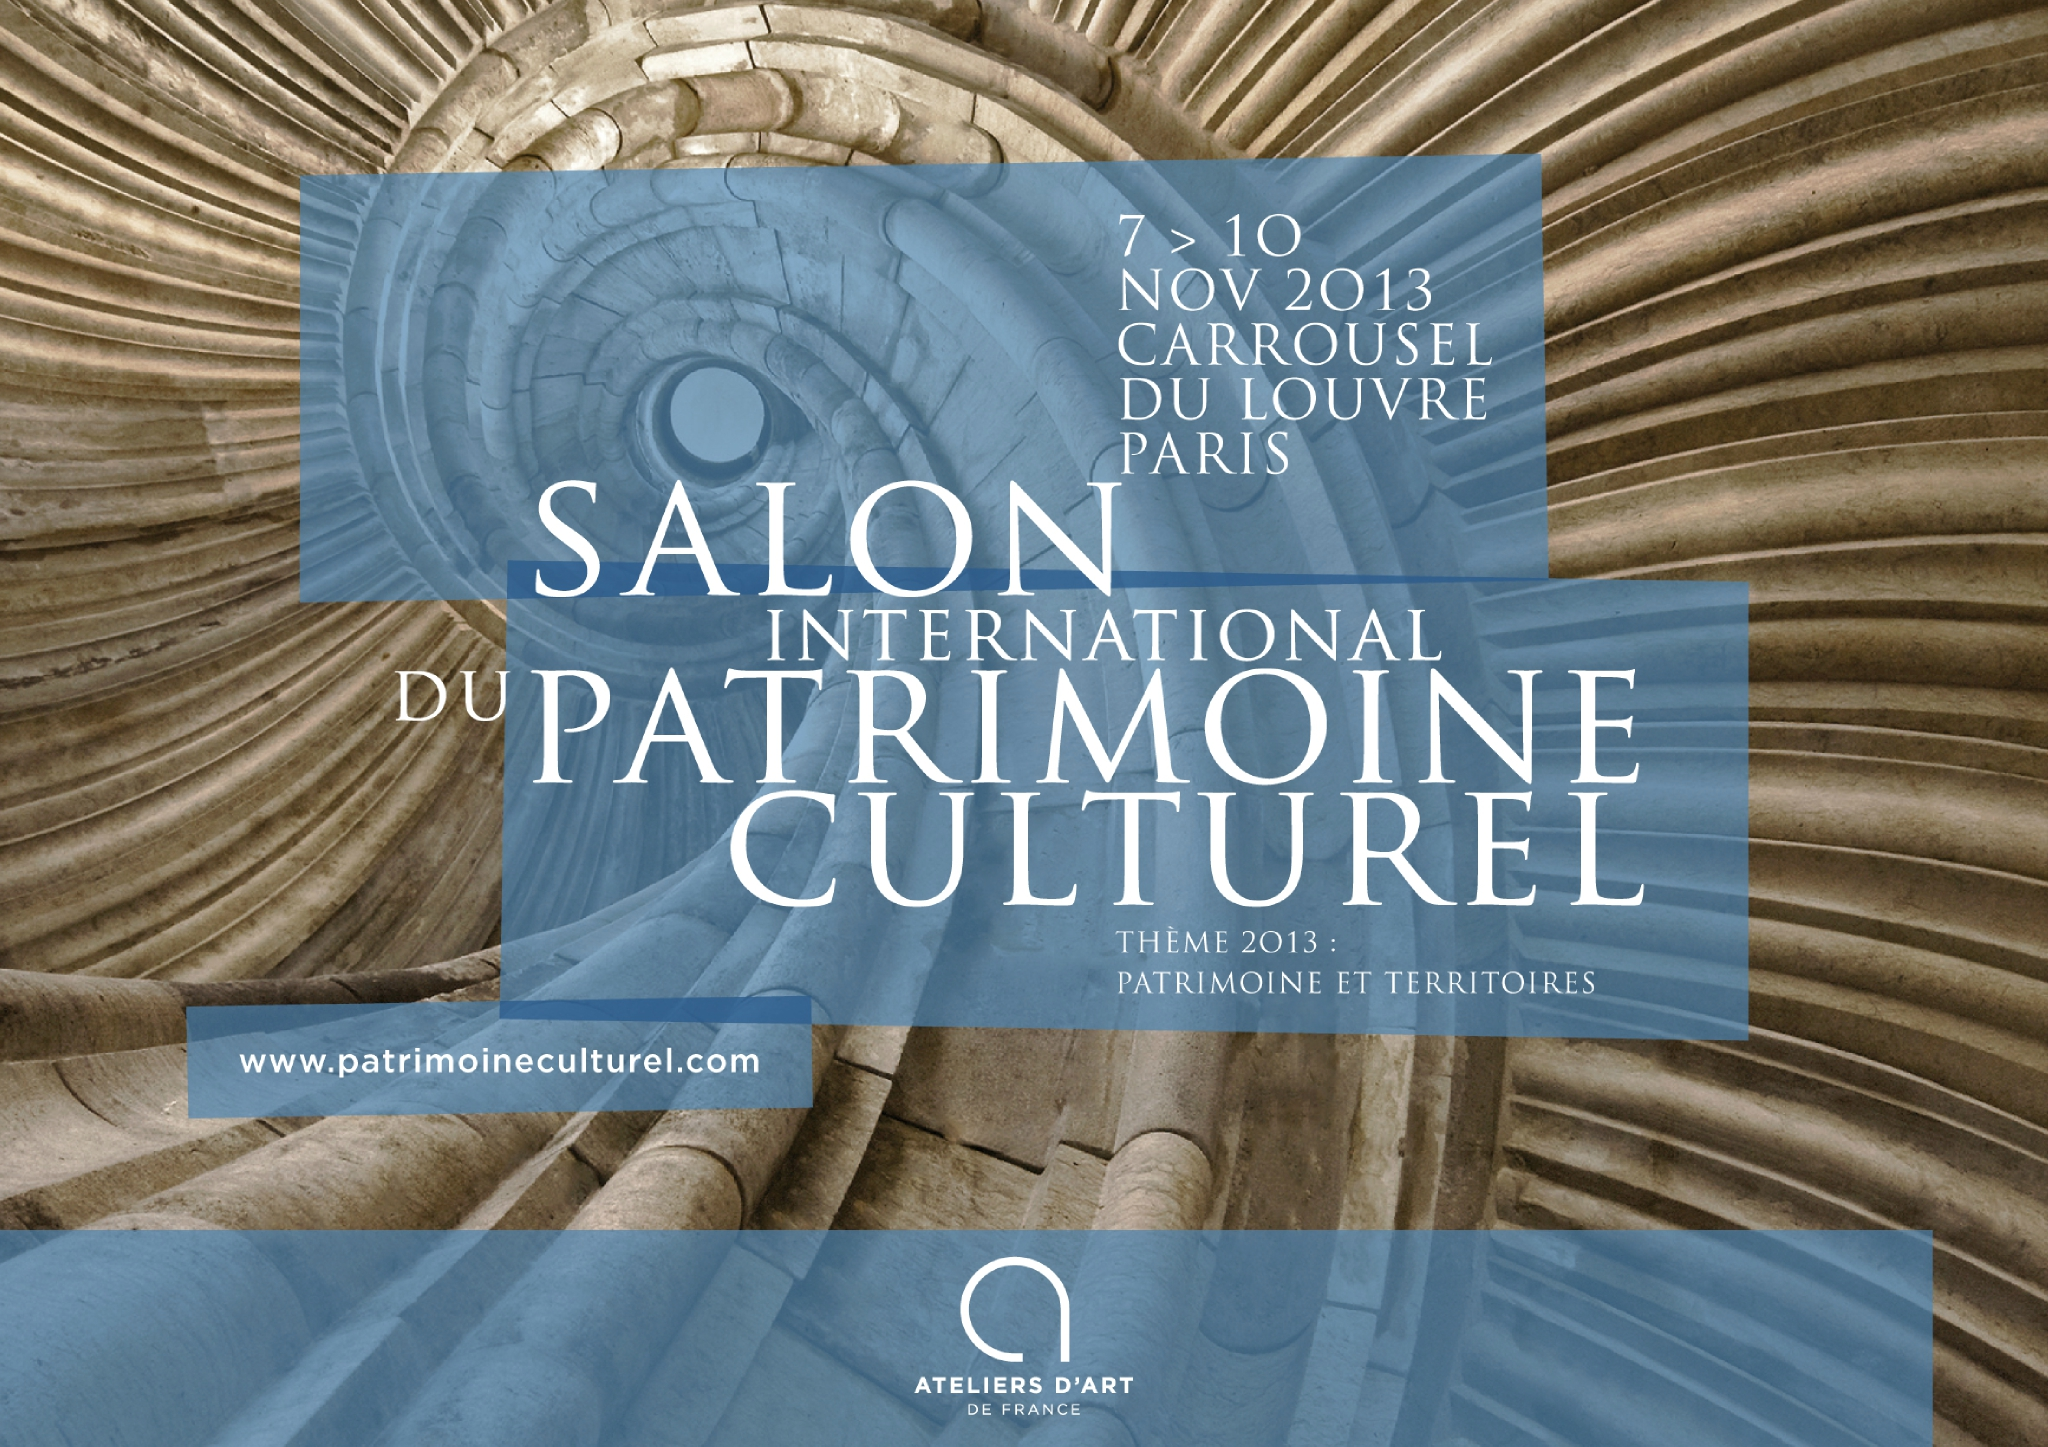 Le salon du patrimoine culturel paris unplugged - Ateliers d arts de france ...